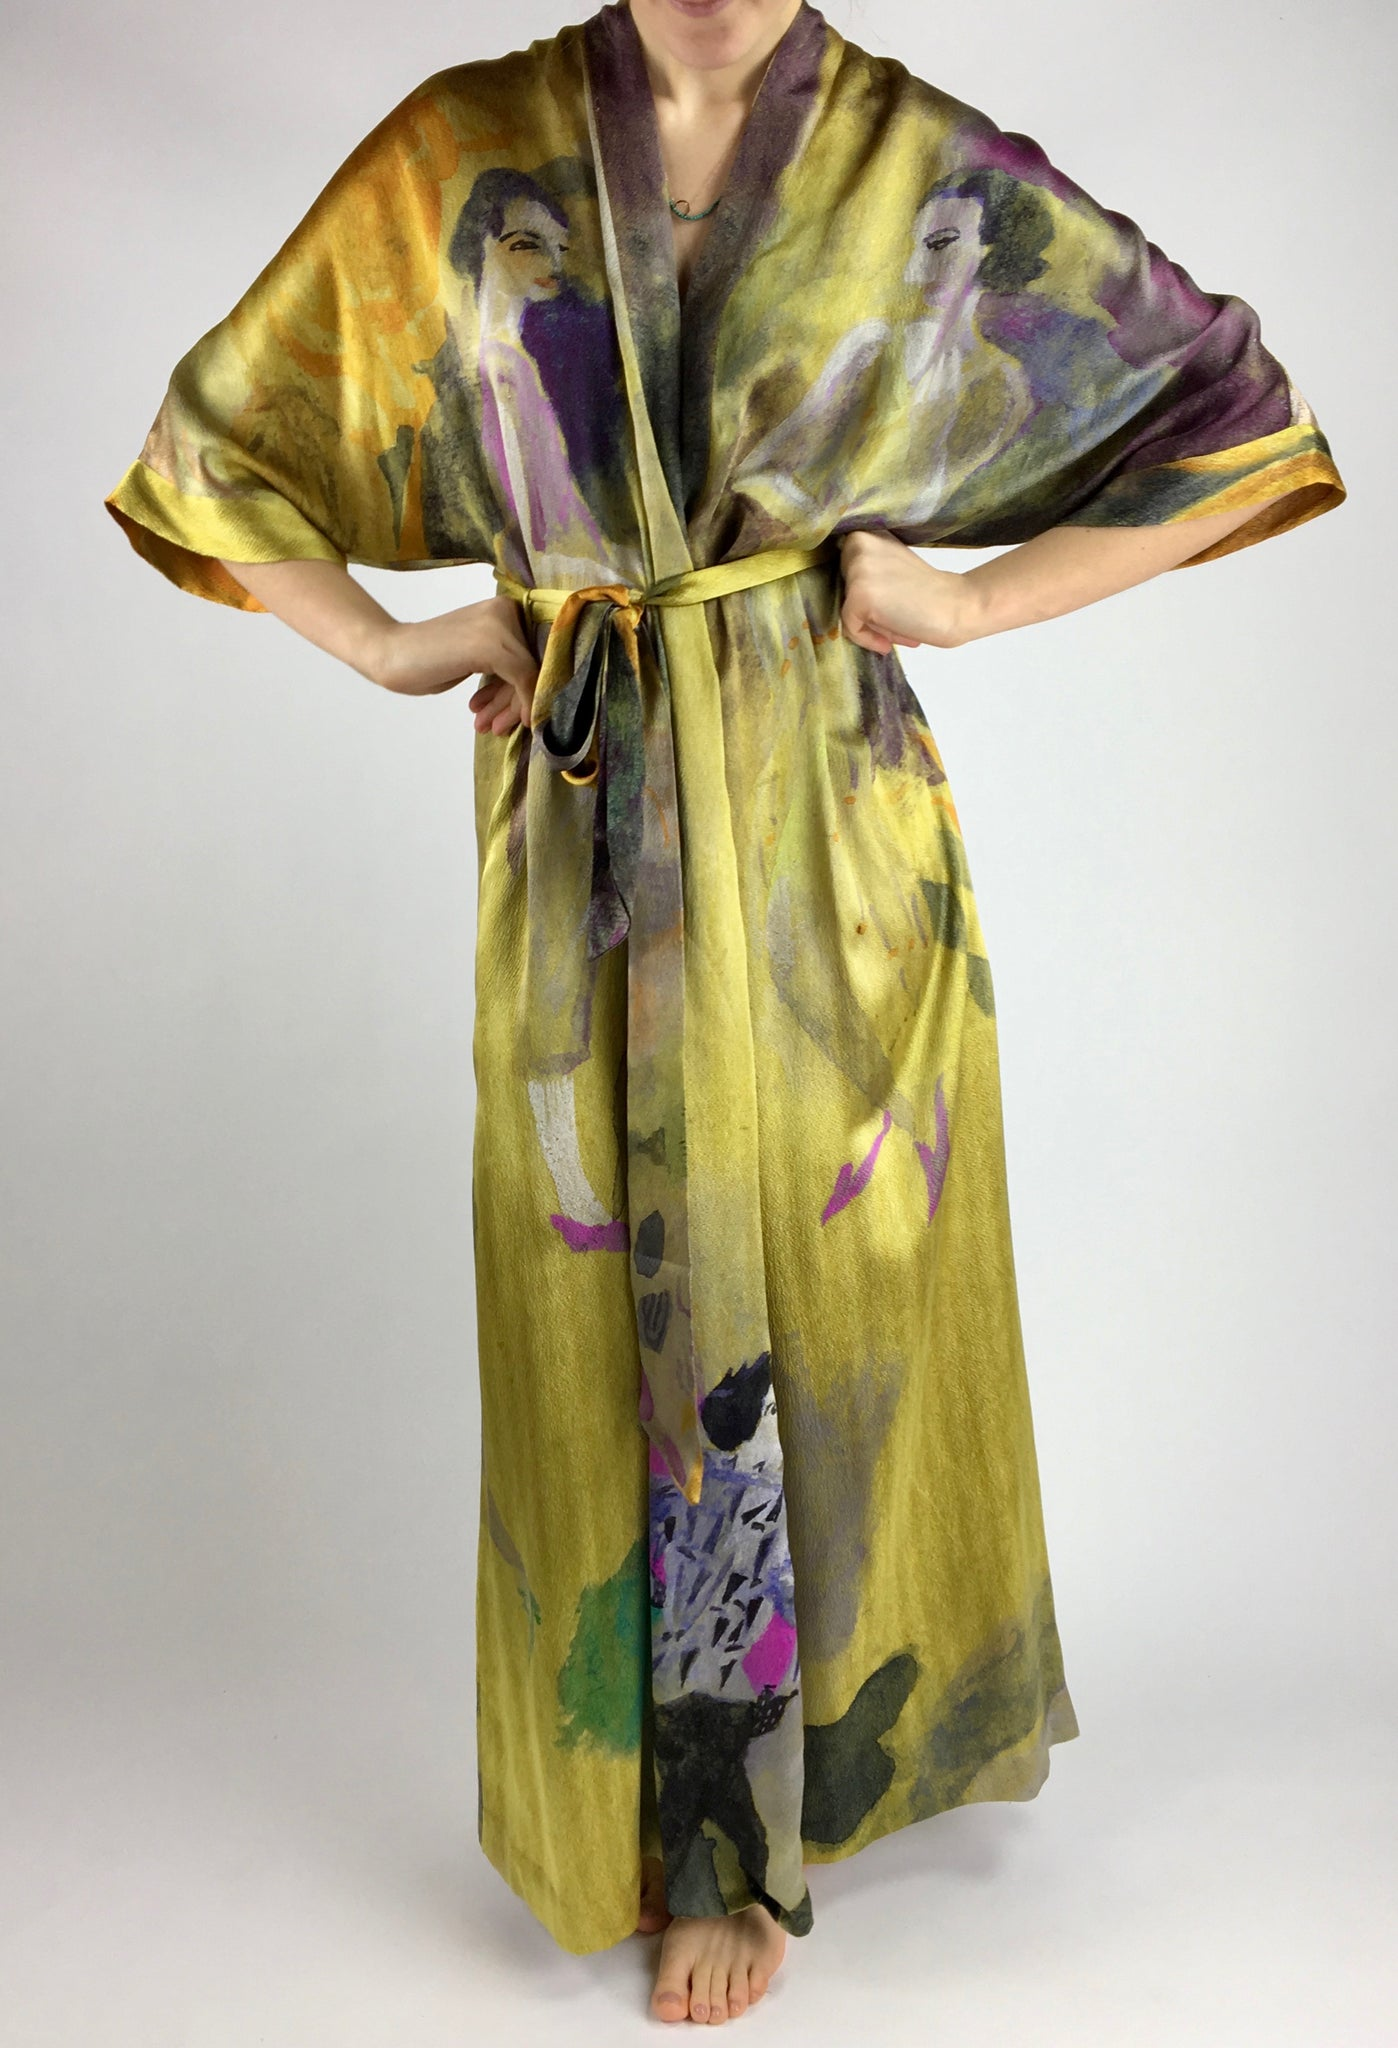 GVE Robe Conversation in gold by Elizabeth Zeschin